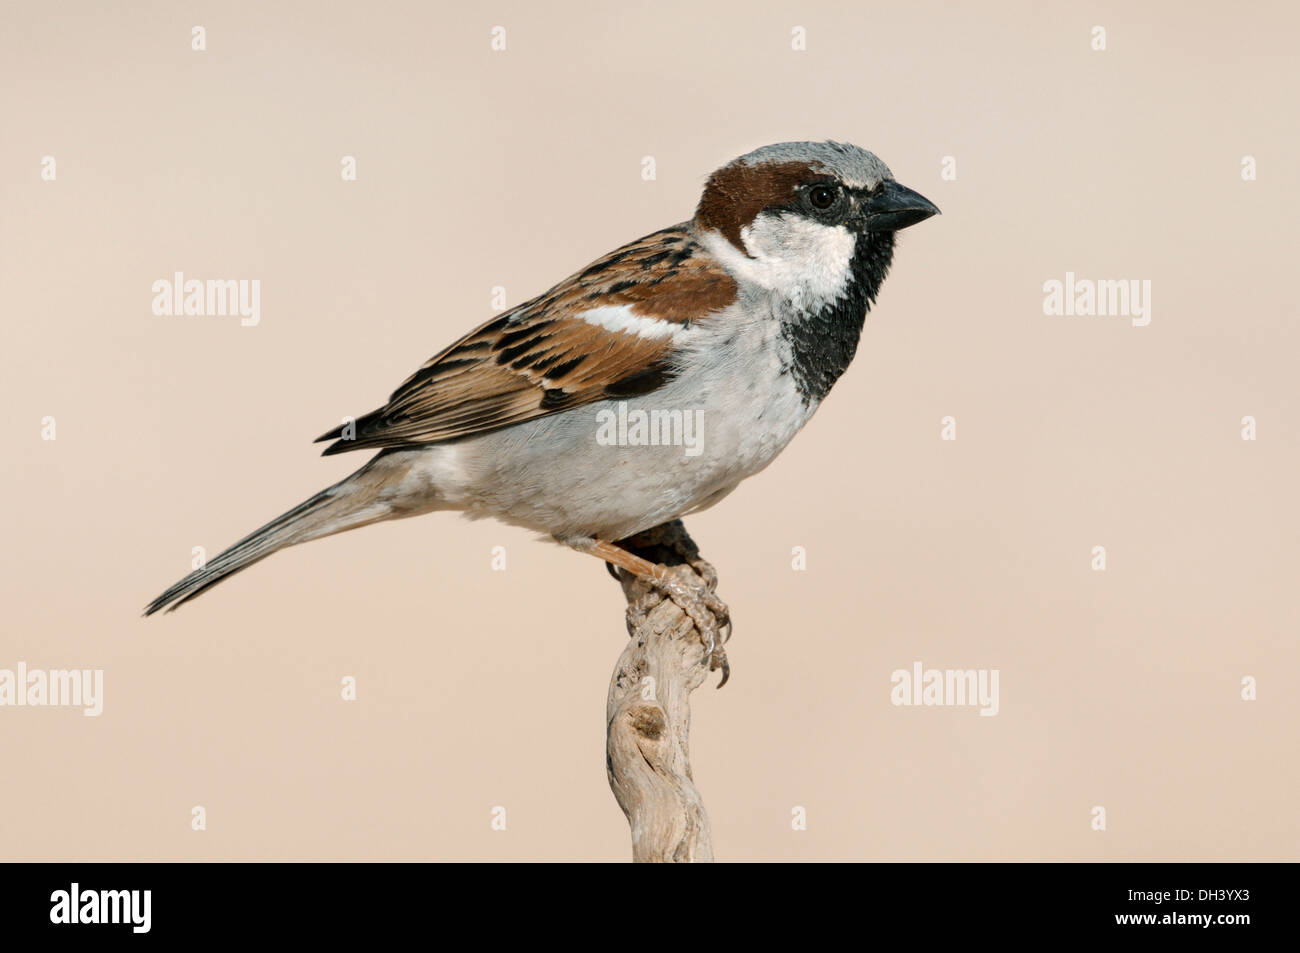 House Sparrow Passer domesticus - Stock Image